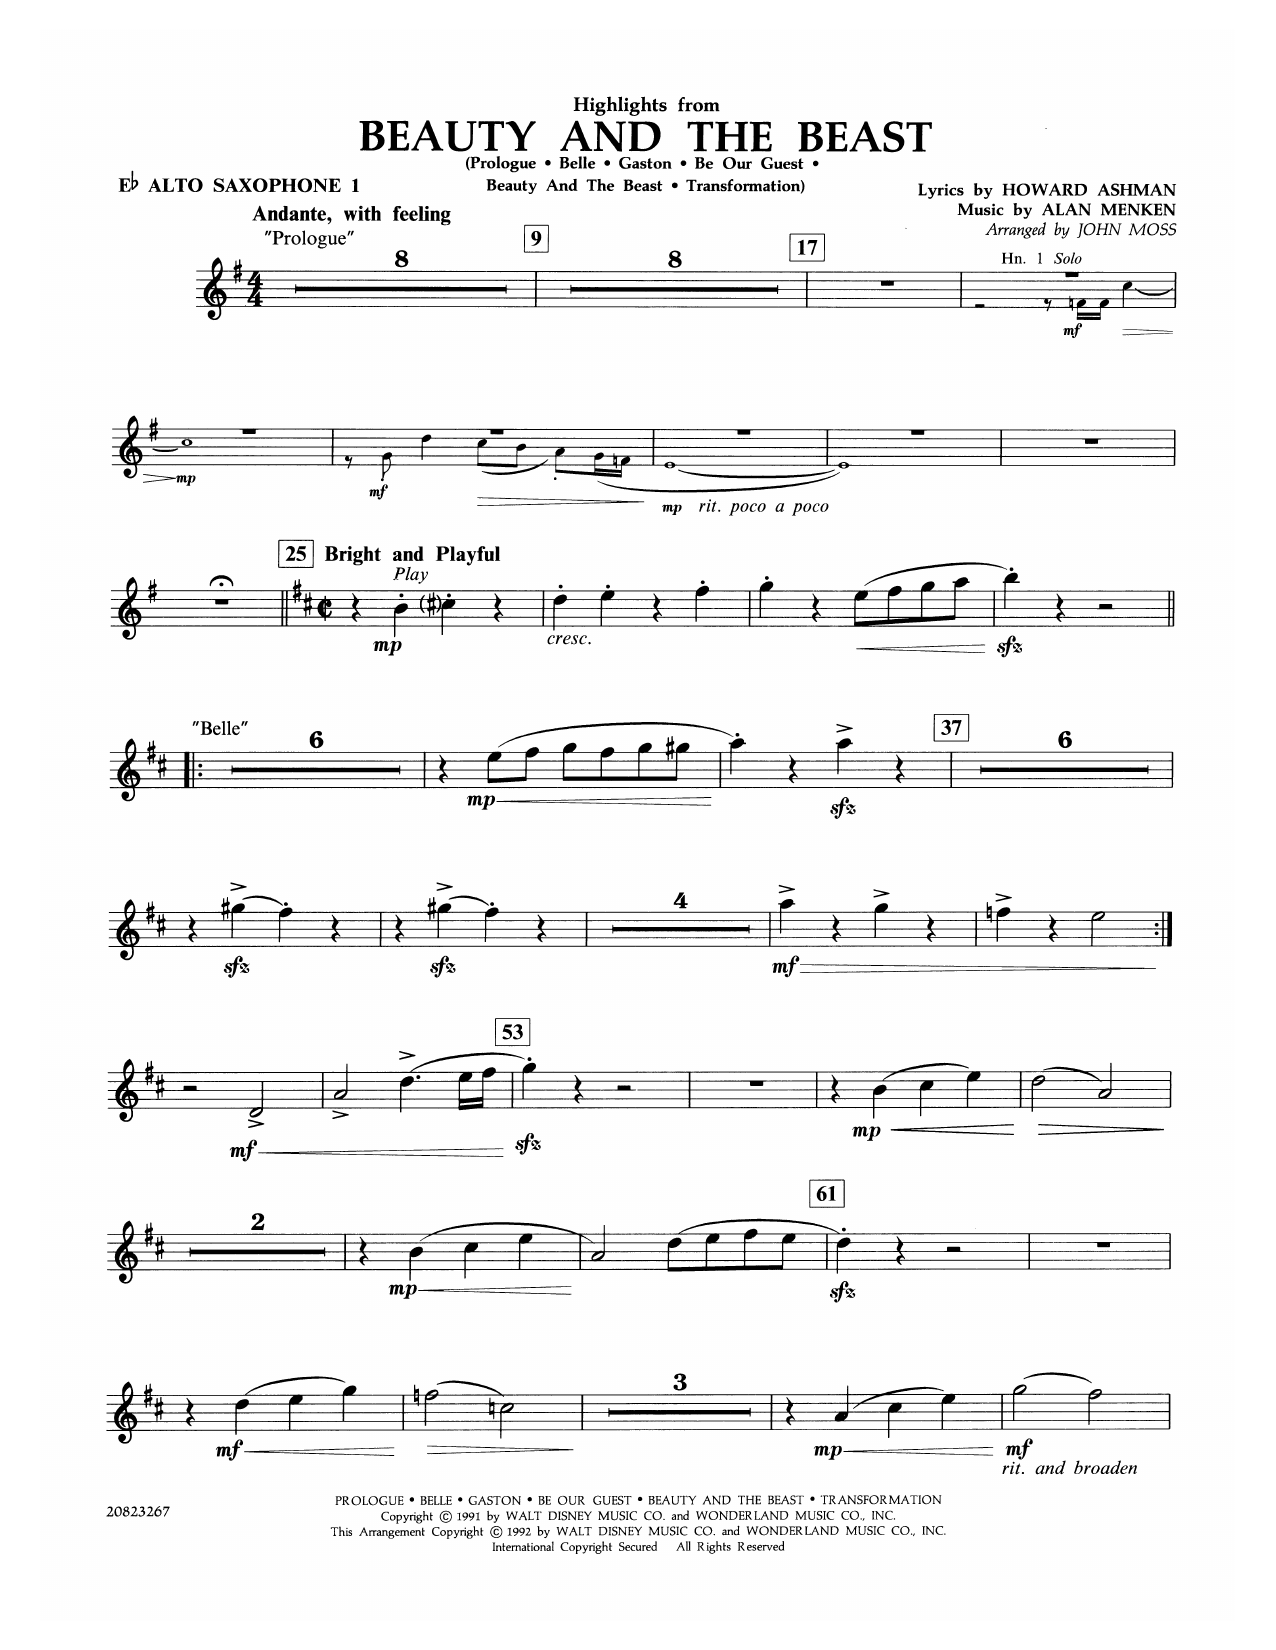 Highlights from Beauty and the Beast - Eb Alto Saxophone 1 Partition Digitale